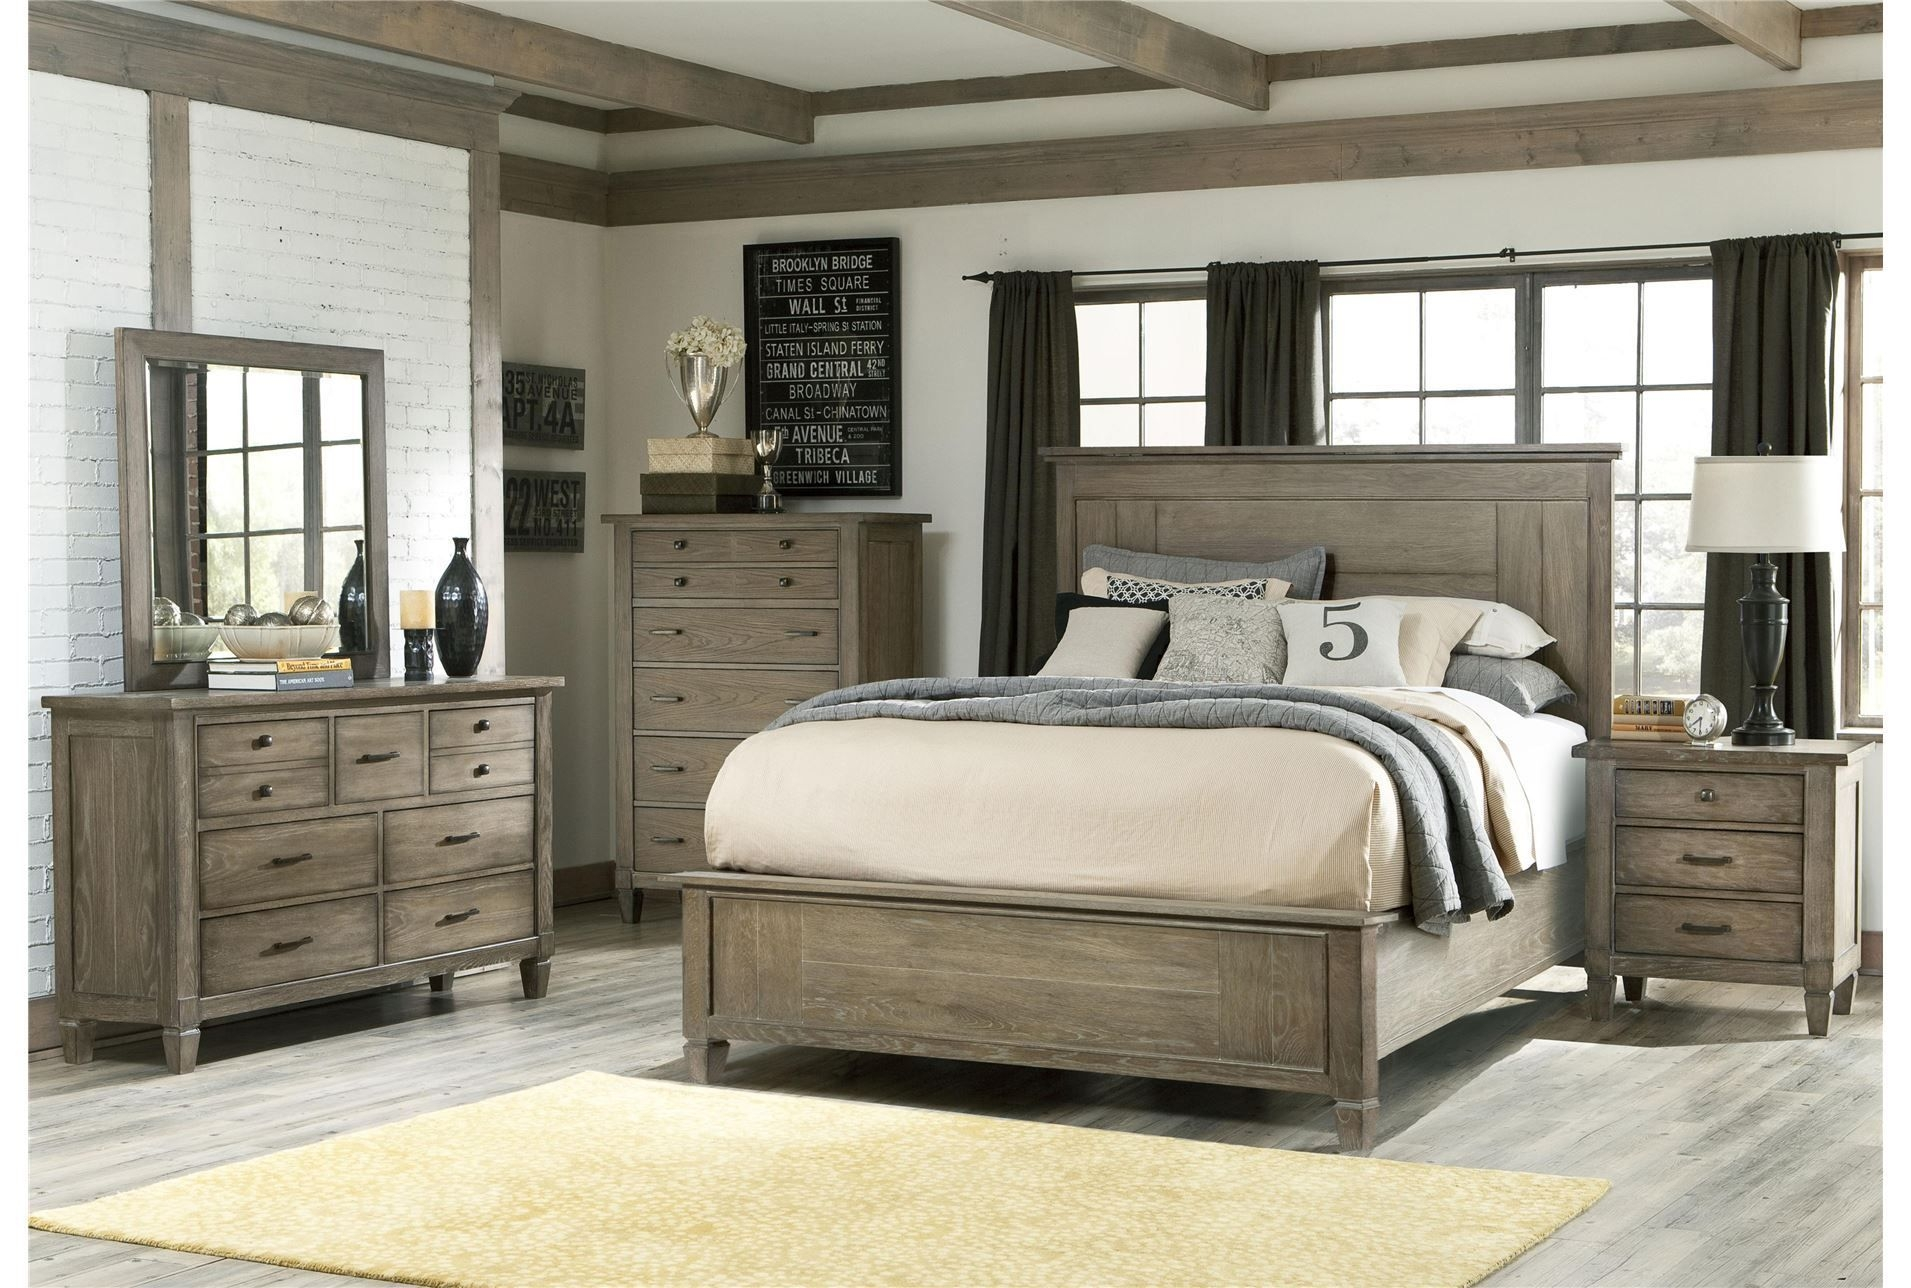 Attirant Distressed Wood Bedroom Sets